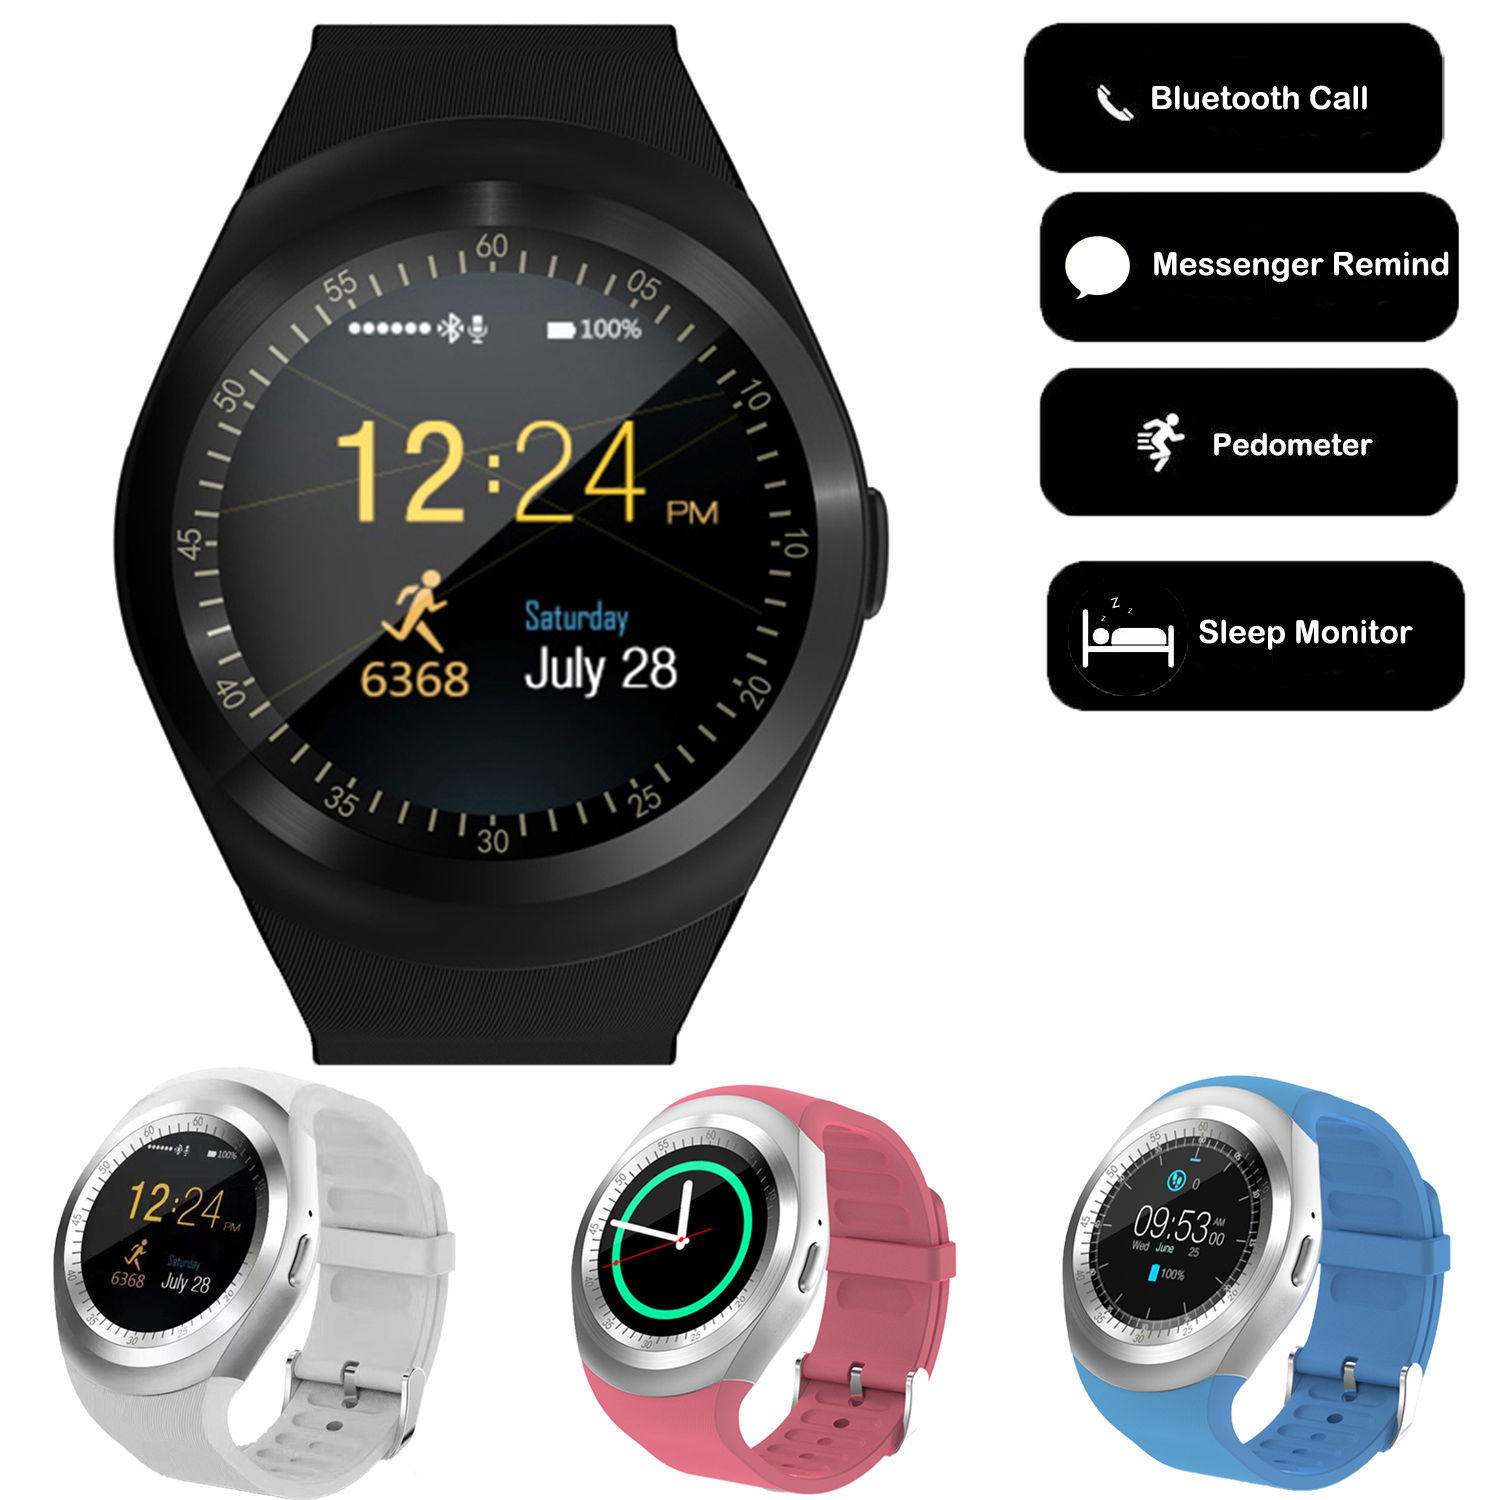 Details about Y1 Bluetooth Smart Watch Pedometer SIM Card Wristband for  Android IOS Phone FL